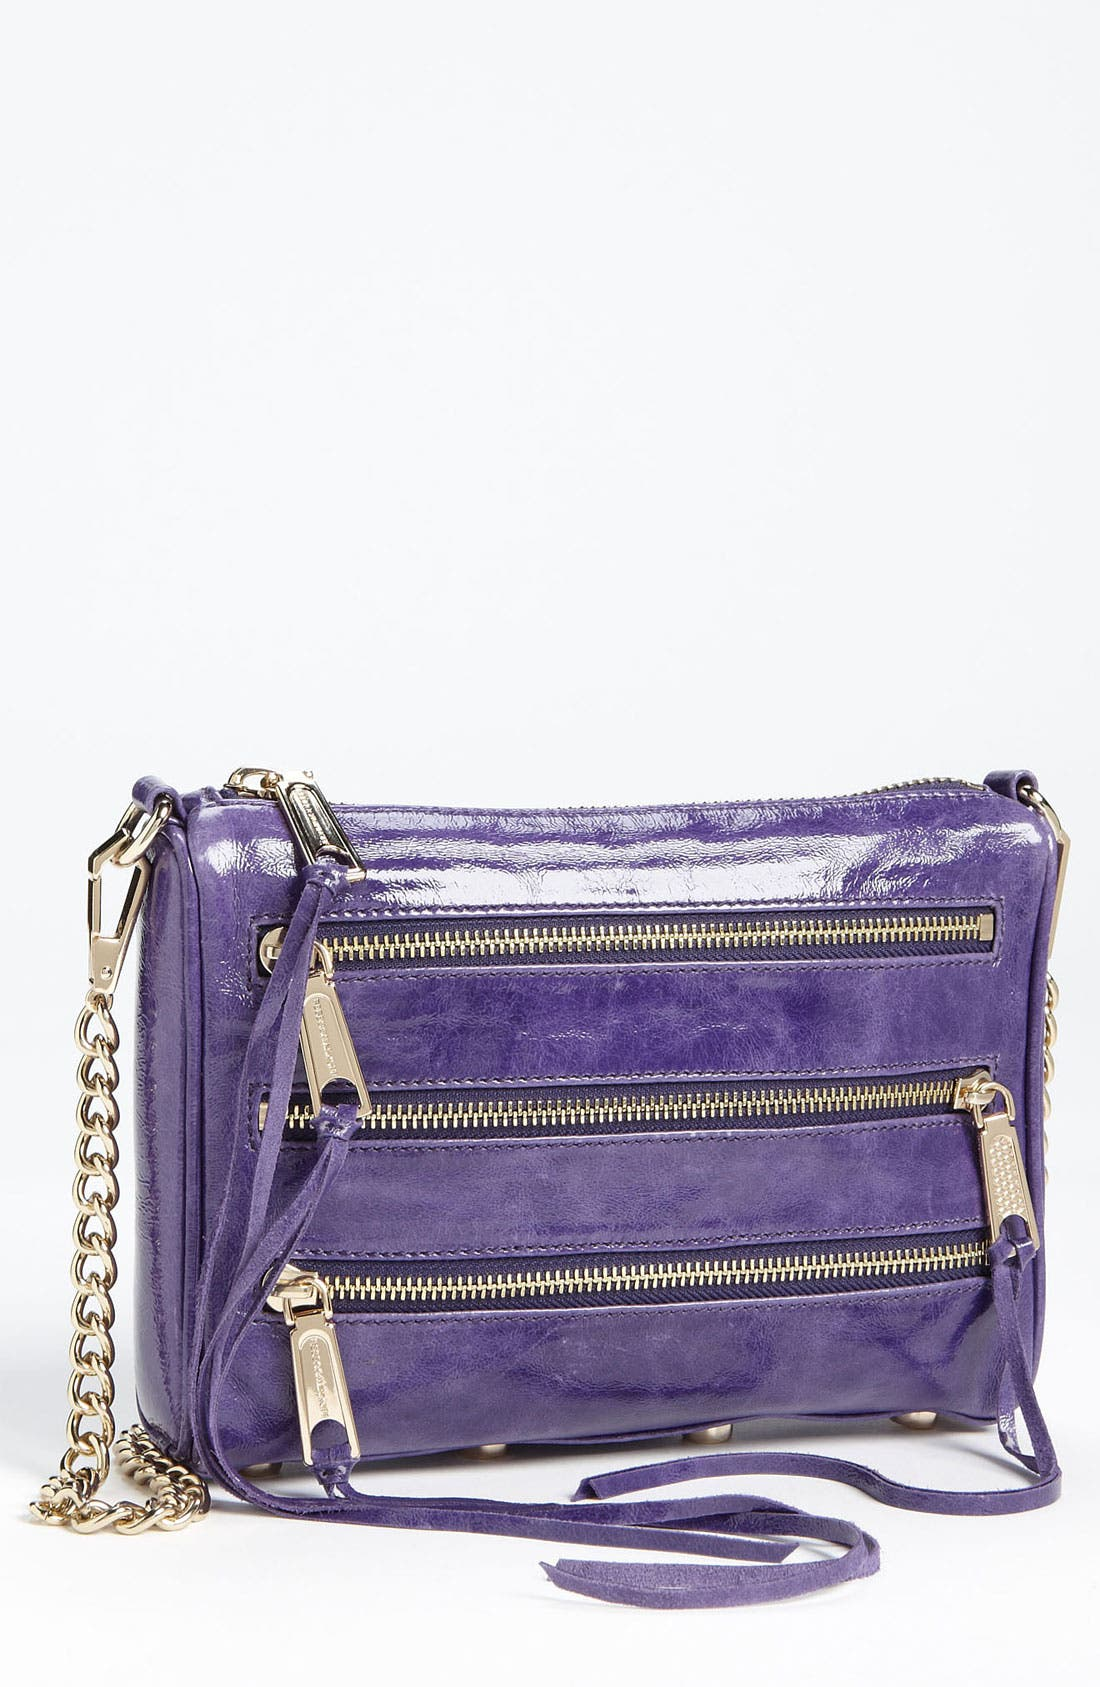 Main Image - Rebecca Minkoff '5 Zip - Mini' Crossbody Bag